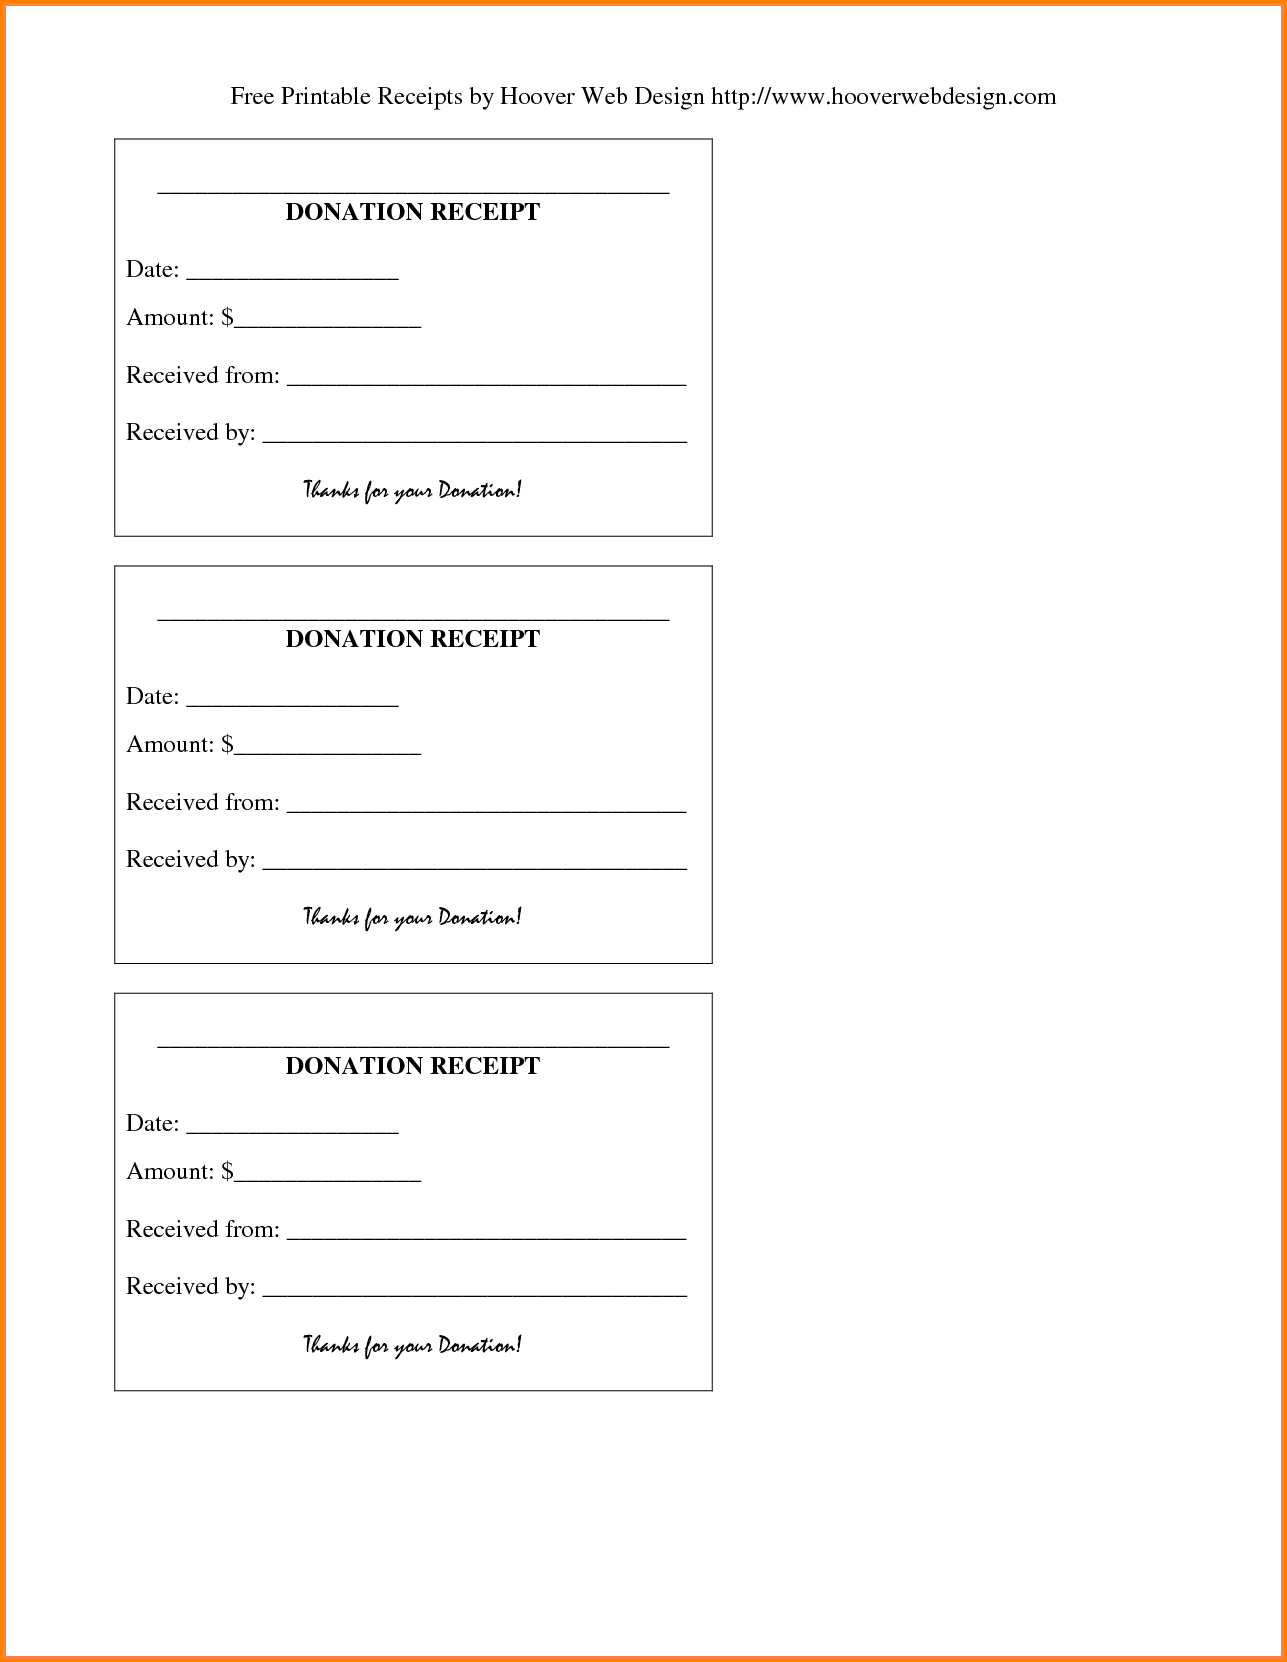 50 Lovely Custom Invoice Receipt Book Pictures Free  Printable - Free Printable Receipts